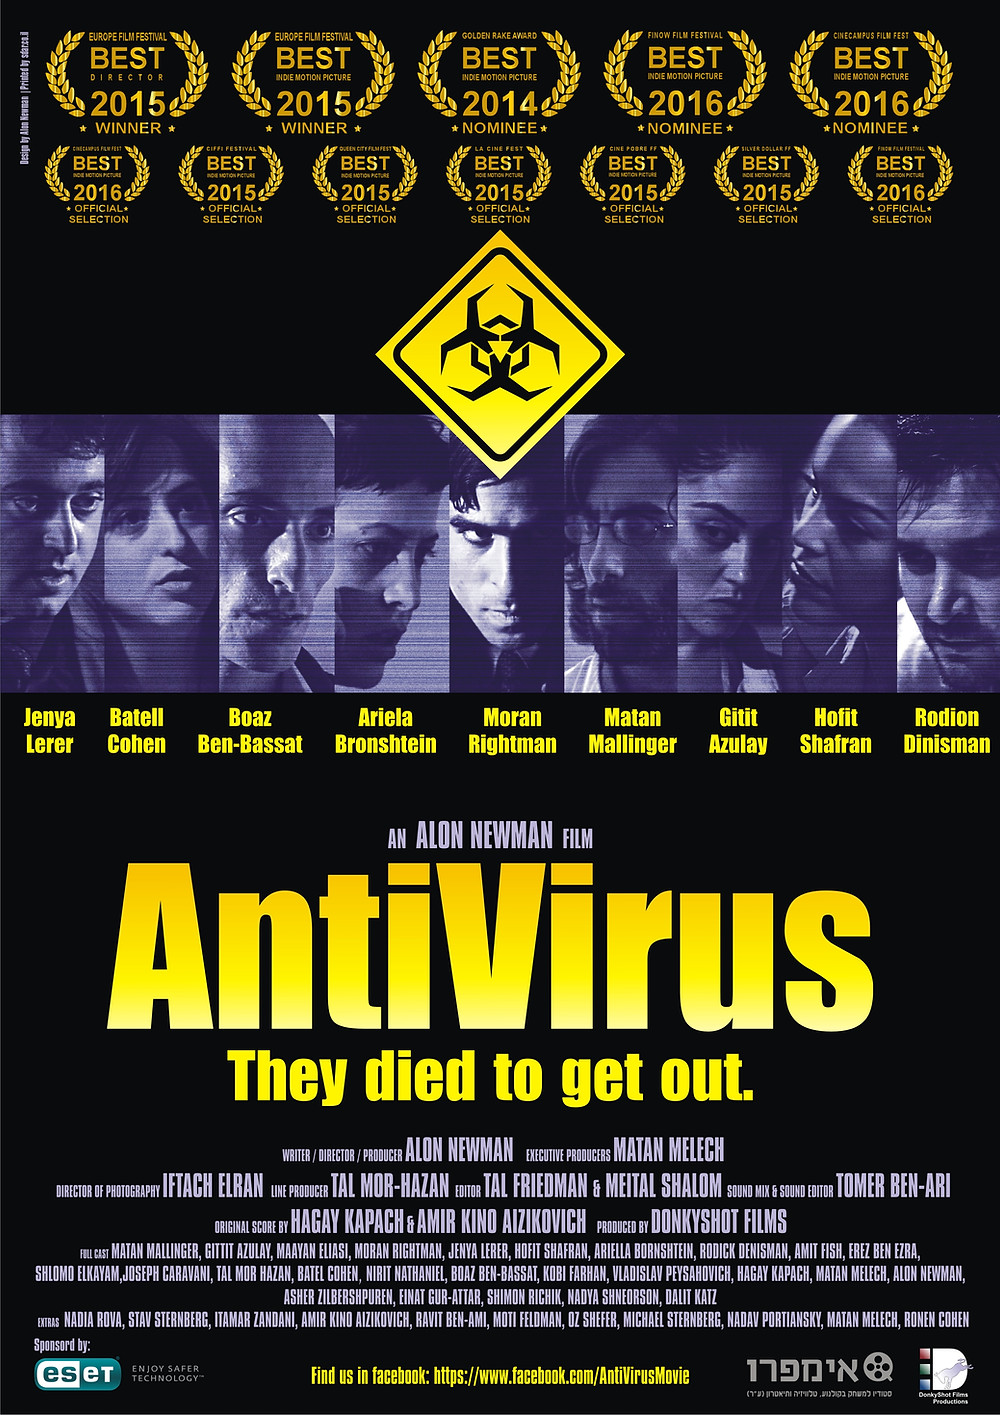 AntiVirus Movie officail Poster 2016